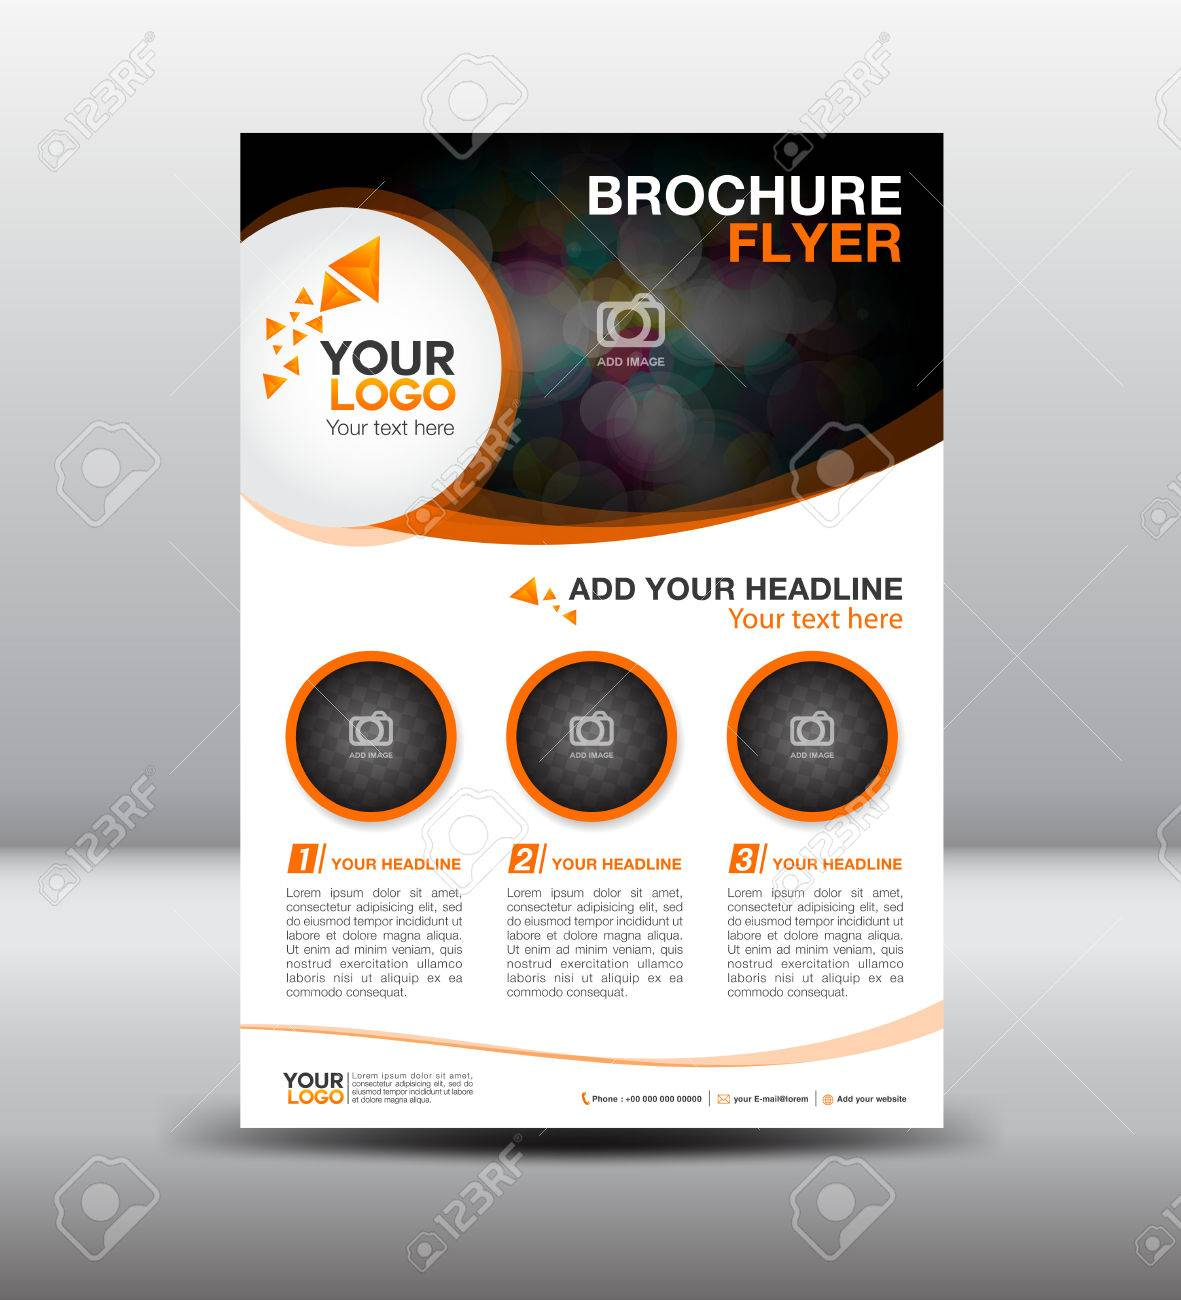 Business Brochure Flyer Design Layout Template In A4 Size Newsletter Royalty Free Cliparts Vectors And Stock Illustration Image 56910048